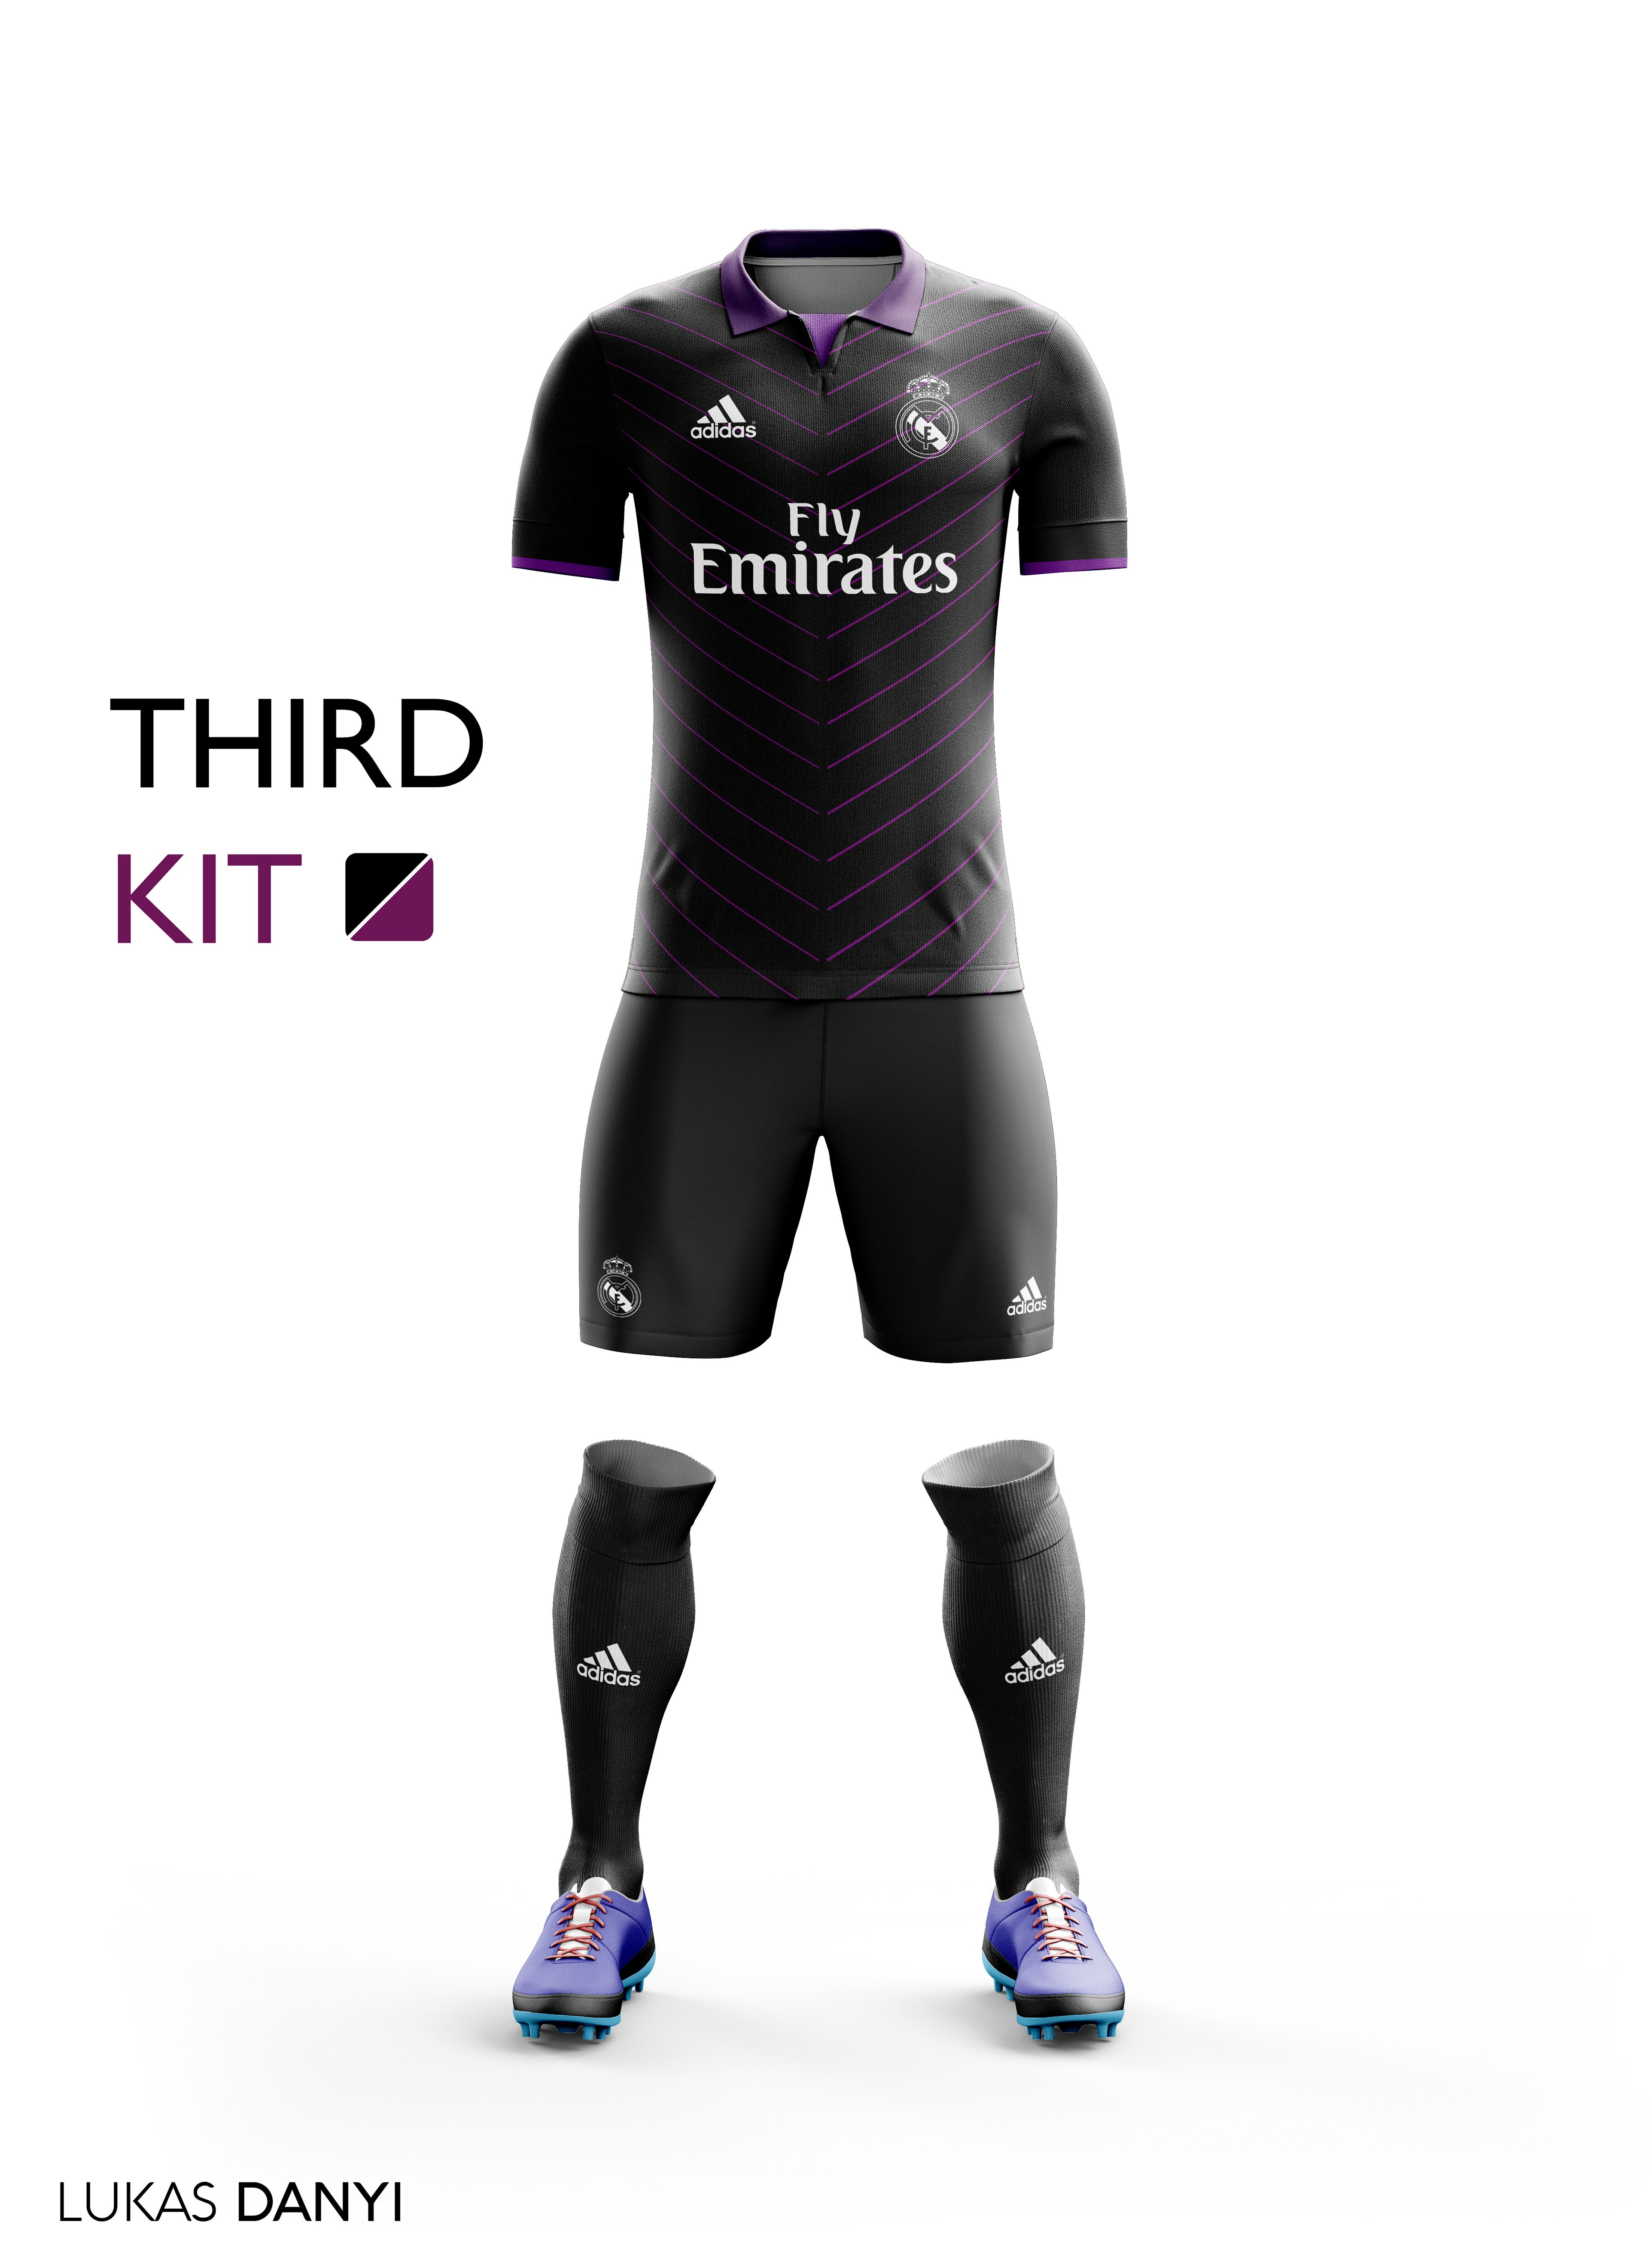 newest 6a2cd 6720c I designed football kits for Real Madrid CF for the upcoming ...